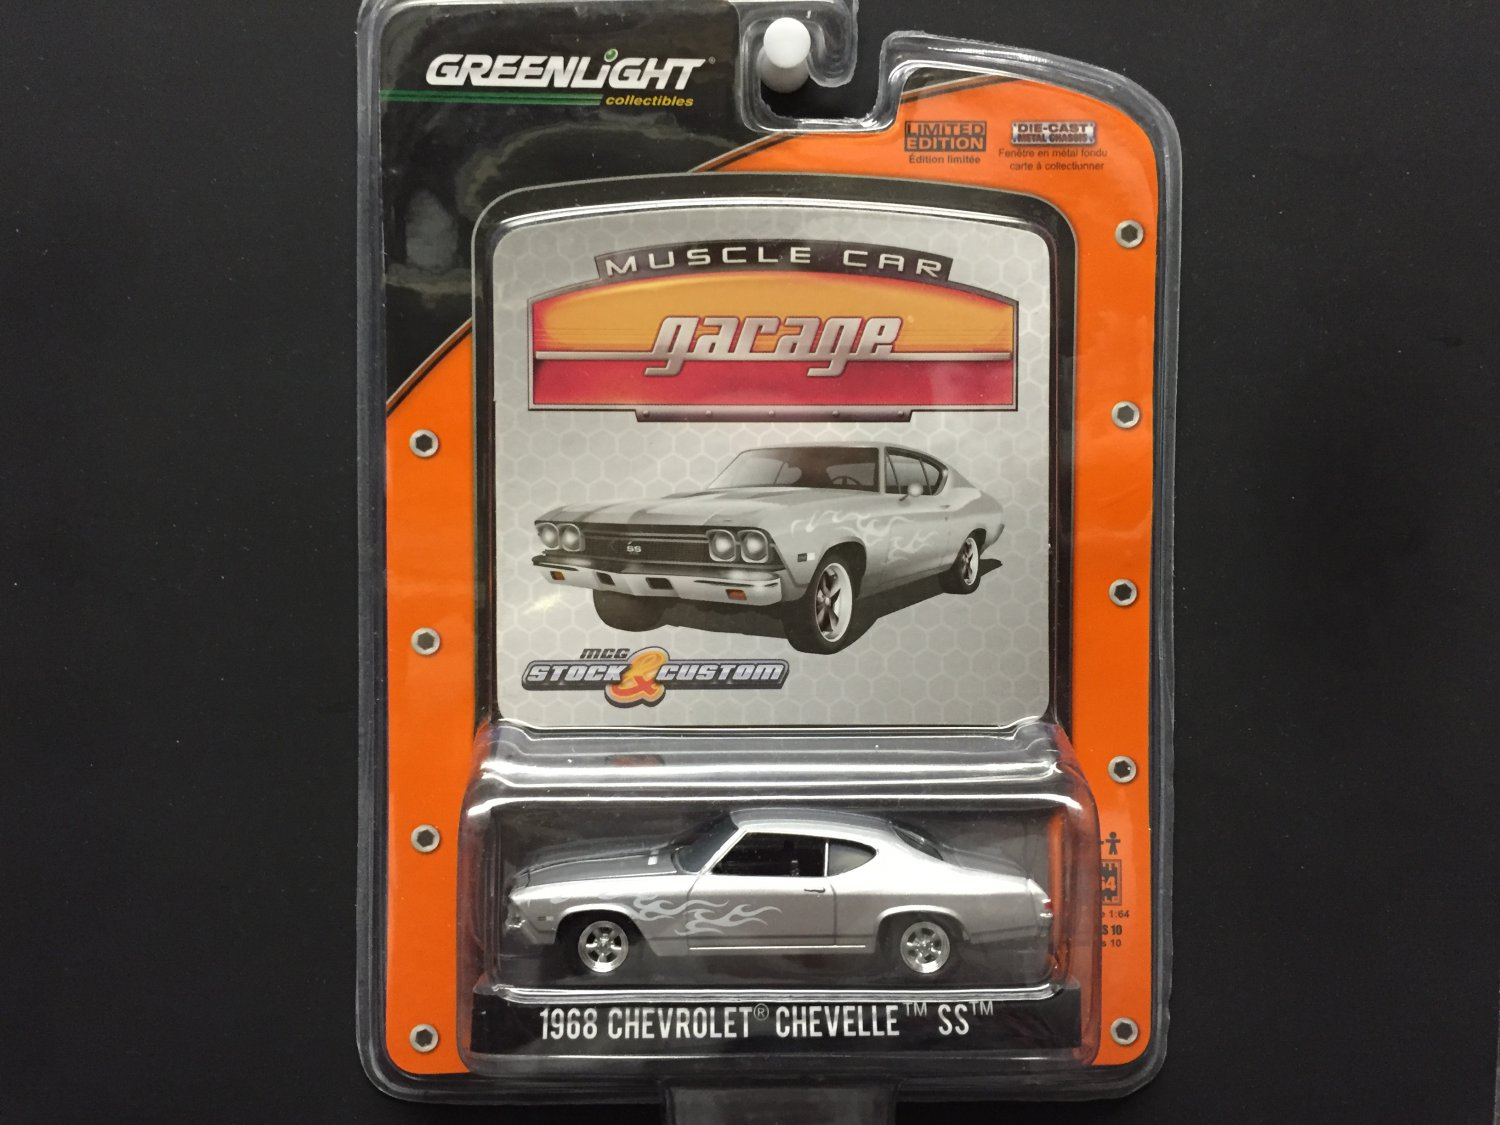 Greenlight Collectibles Muscle Car Garage 1968 Chevrolet Chevelle Ss